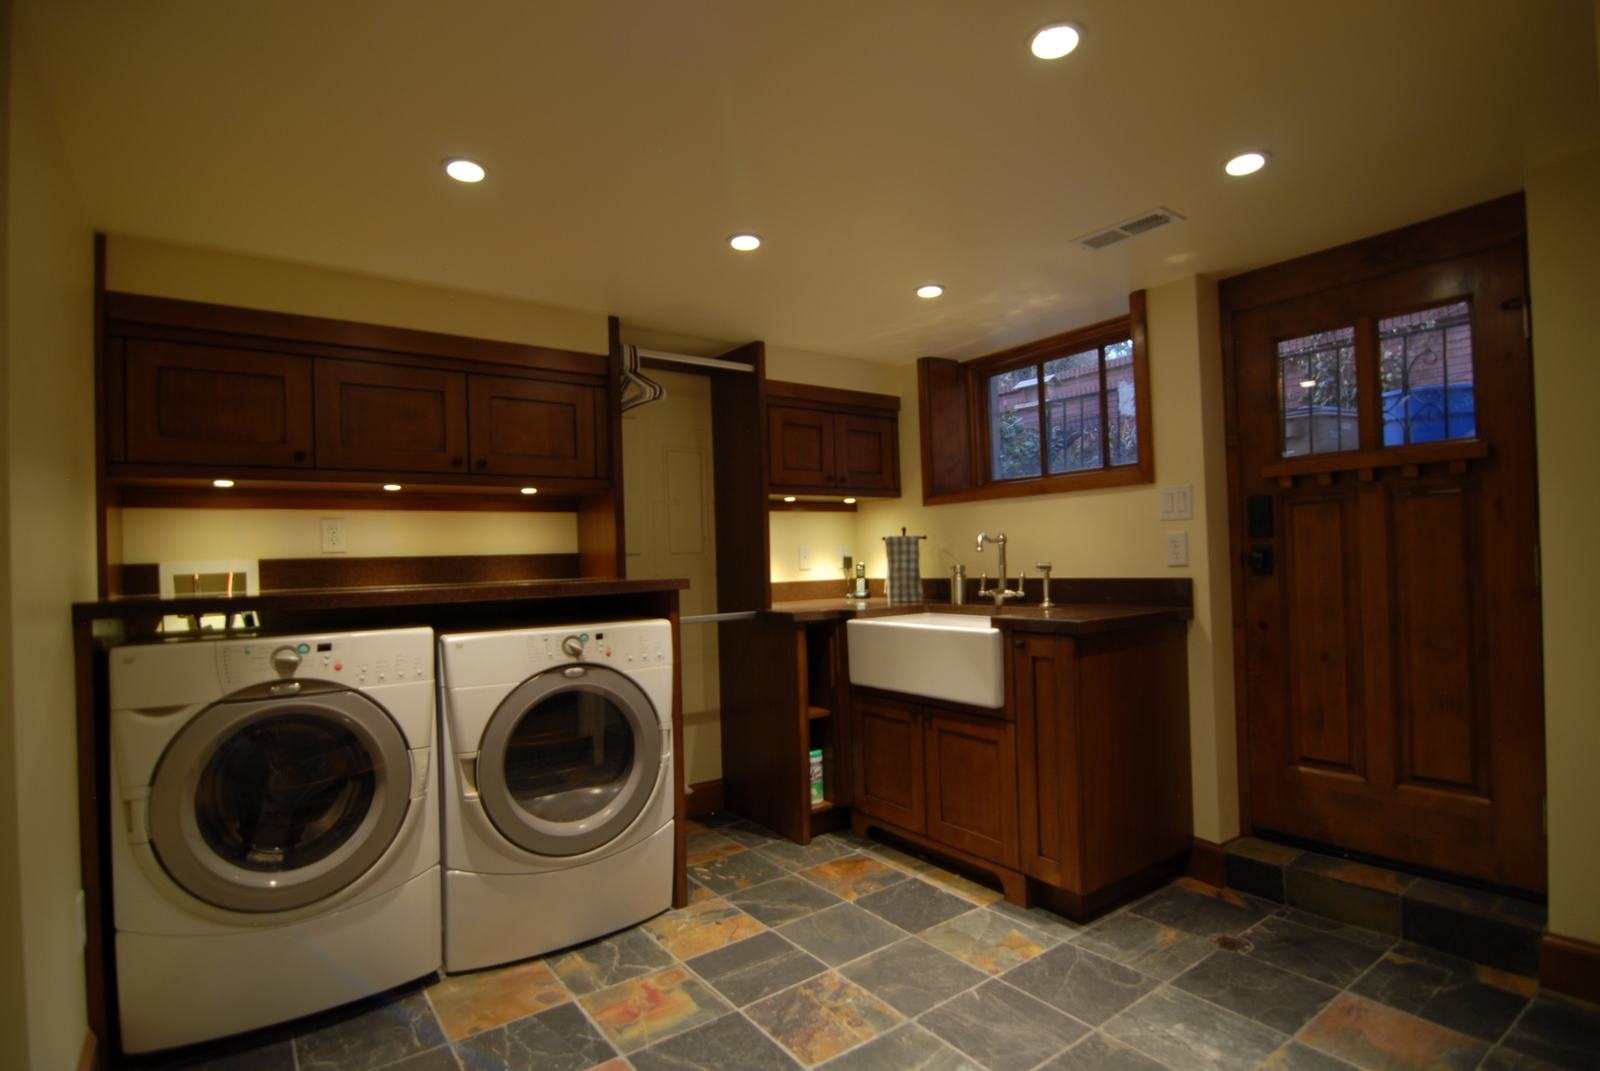 Laundry Basement Bathroom Design Layout